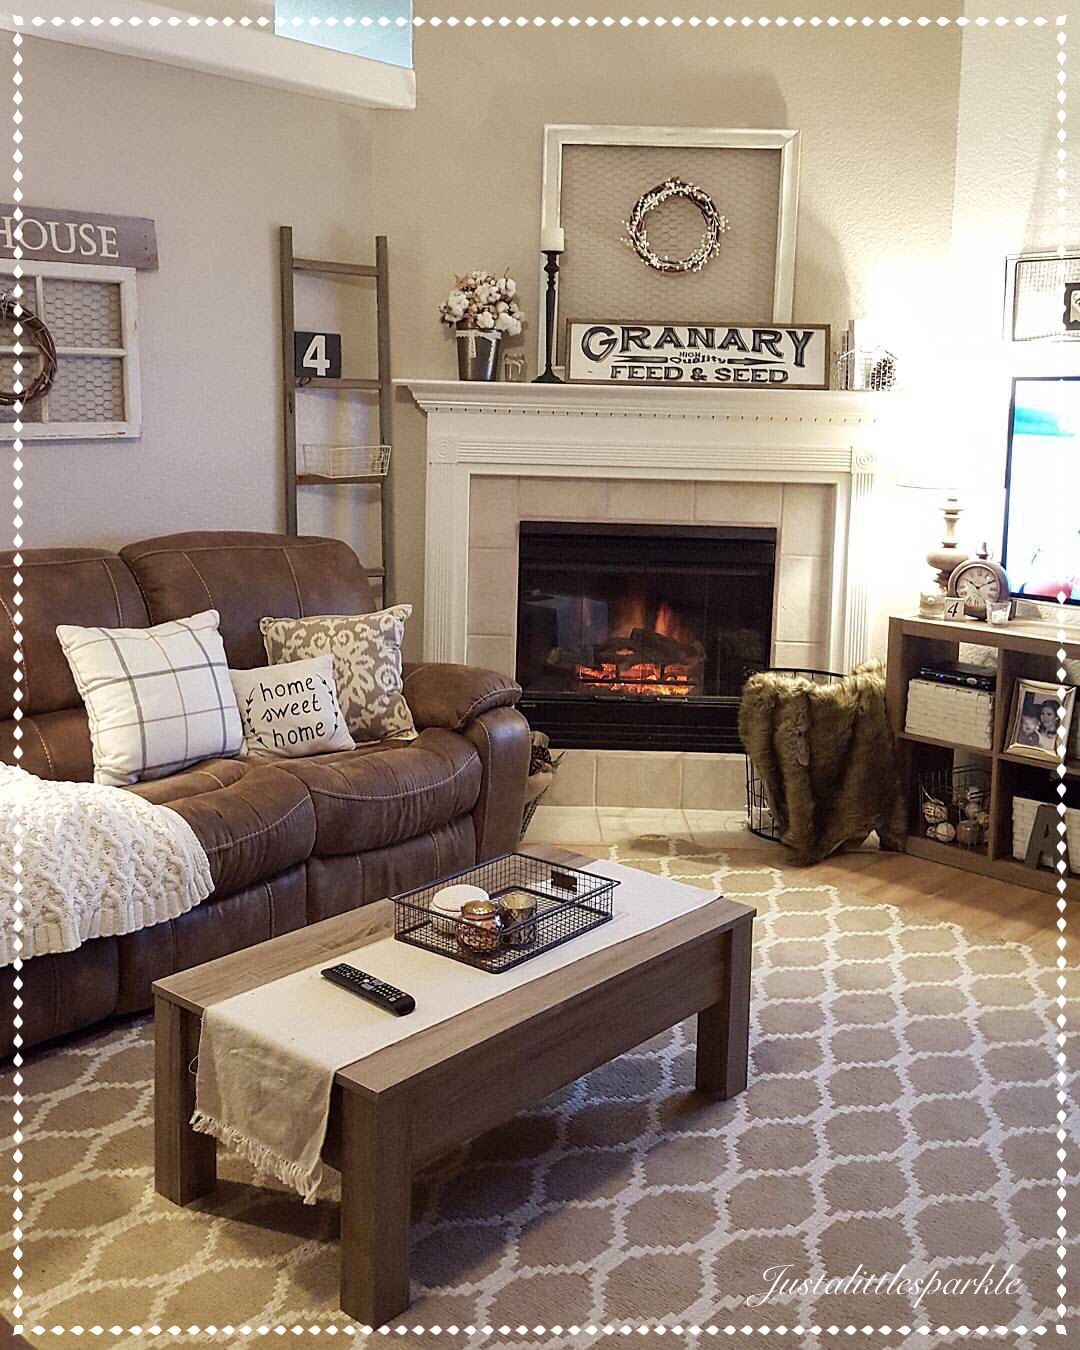 Cozy Living Room cozy living room, brown couch decor, ladder, winter decor | living